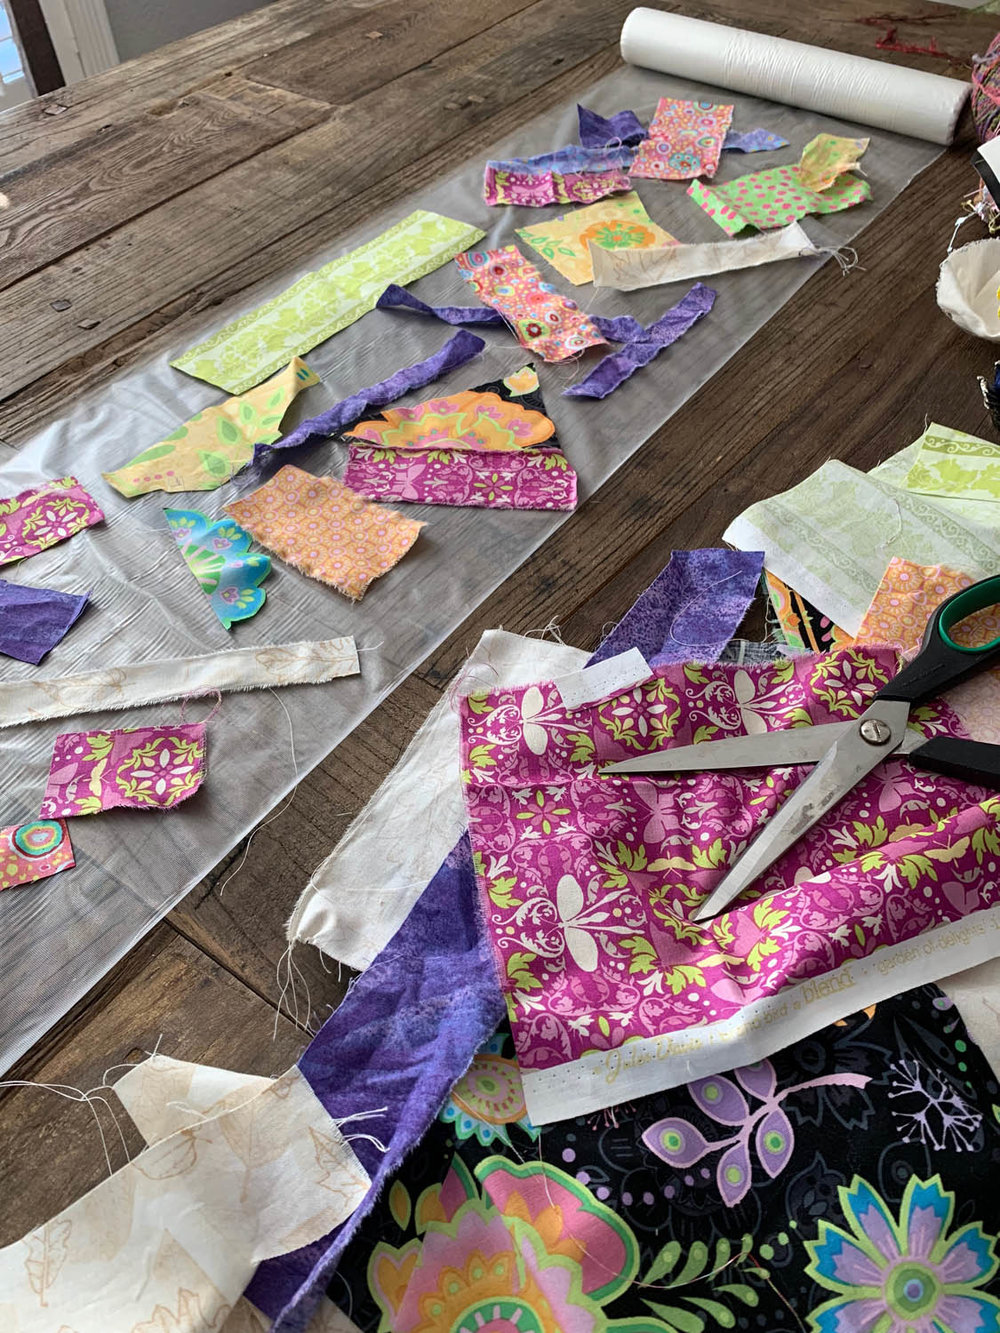 fabric scraps being laid on top of layer of Sulky Solvy stabilzer to create [Sulky Solvy] Upcycled Fiber Table Runner